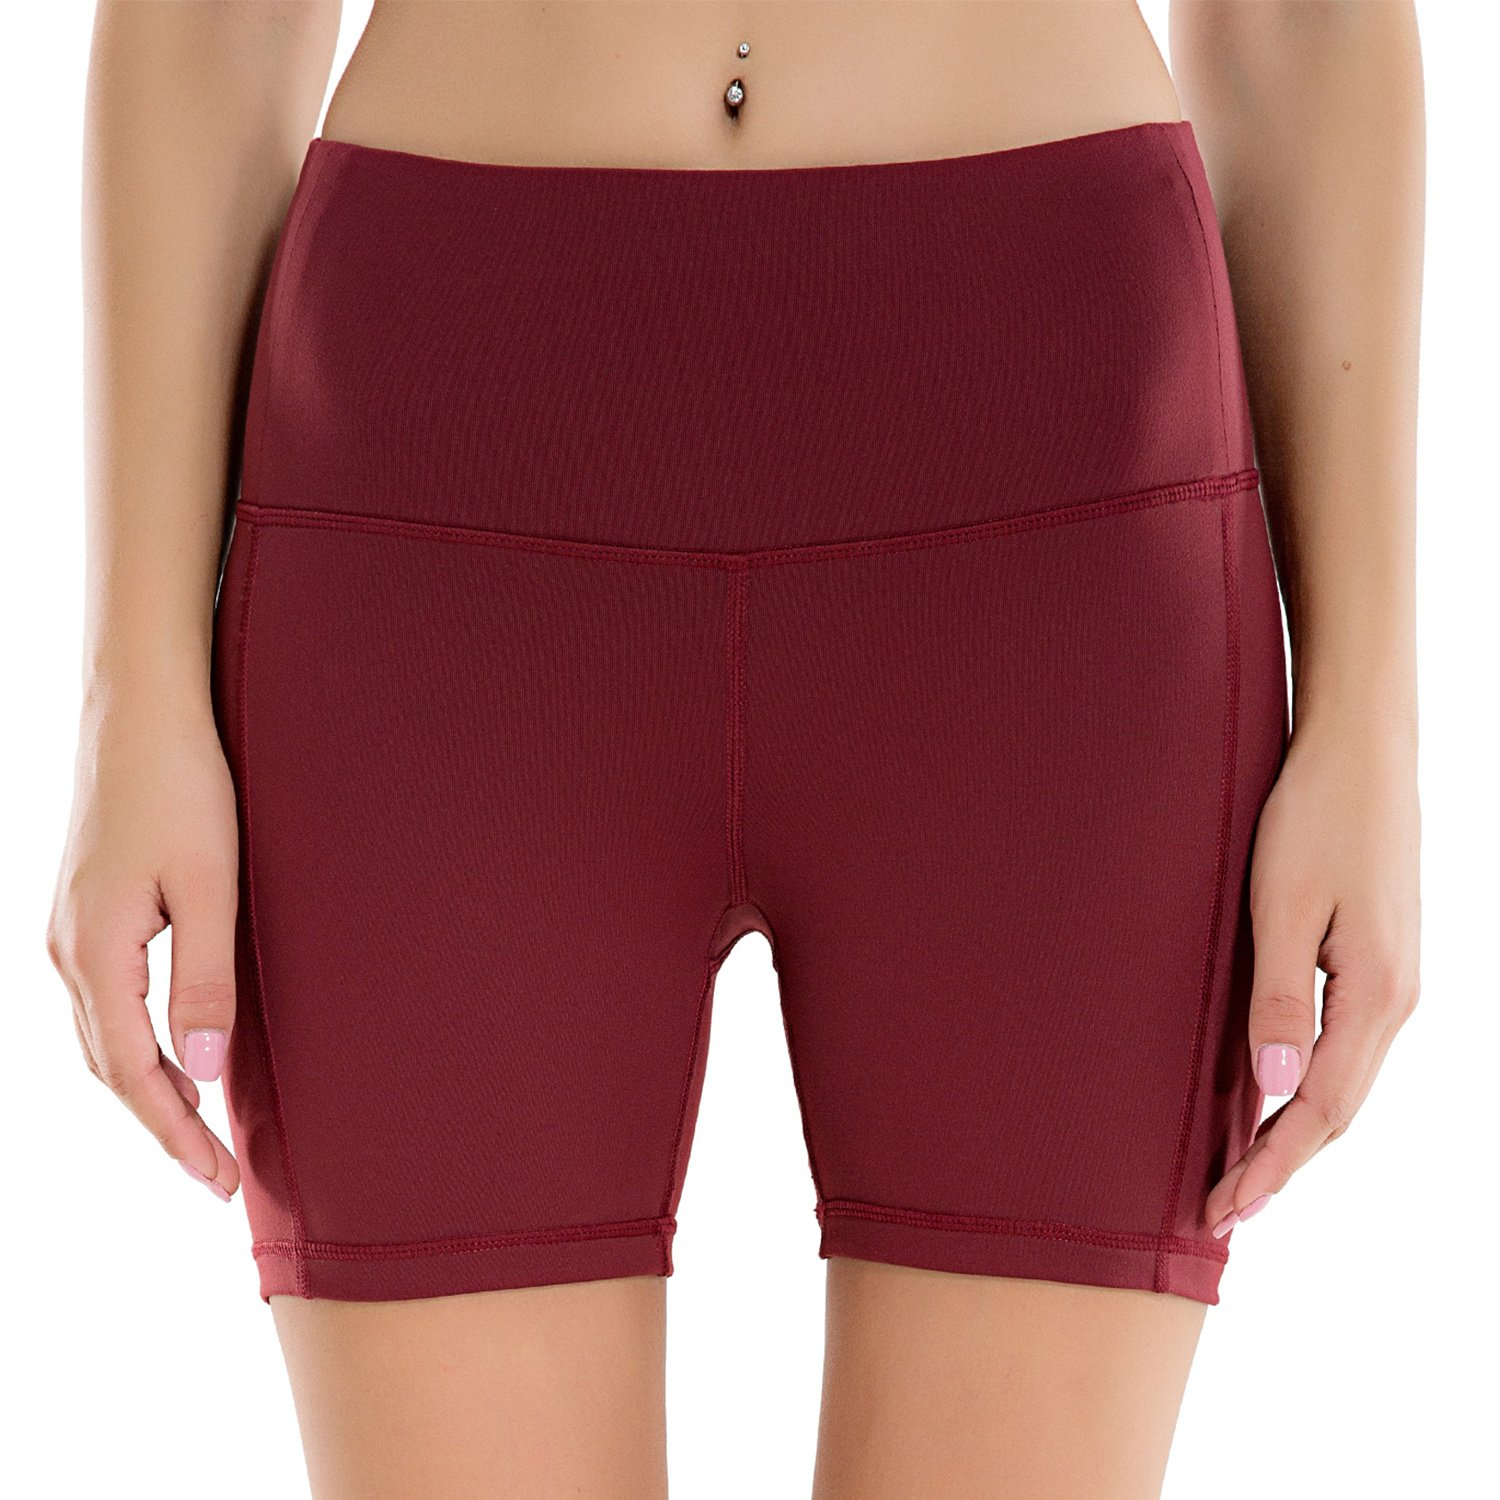 Houmous Women's High Waist Yoga Shorts Tummy Control Workout Running Shorts with Back Hidden Pocket for 5.5 Mobile Phone